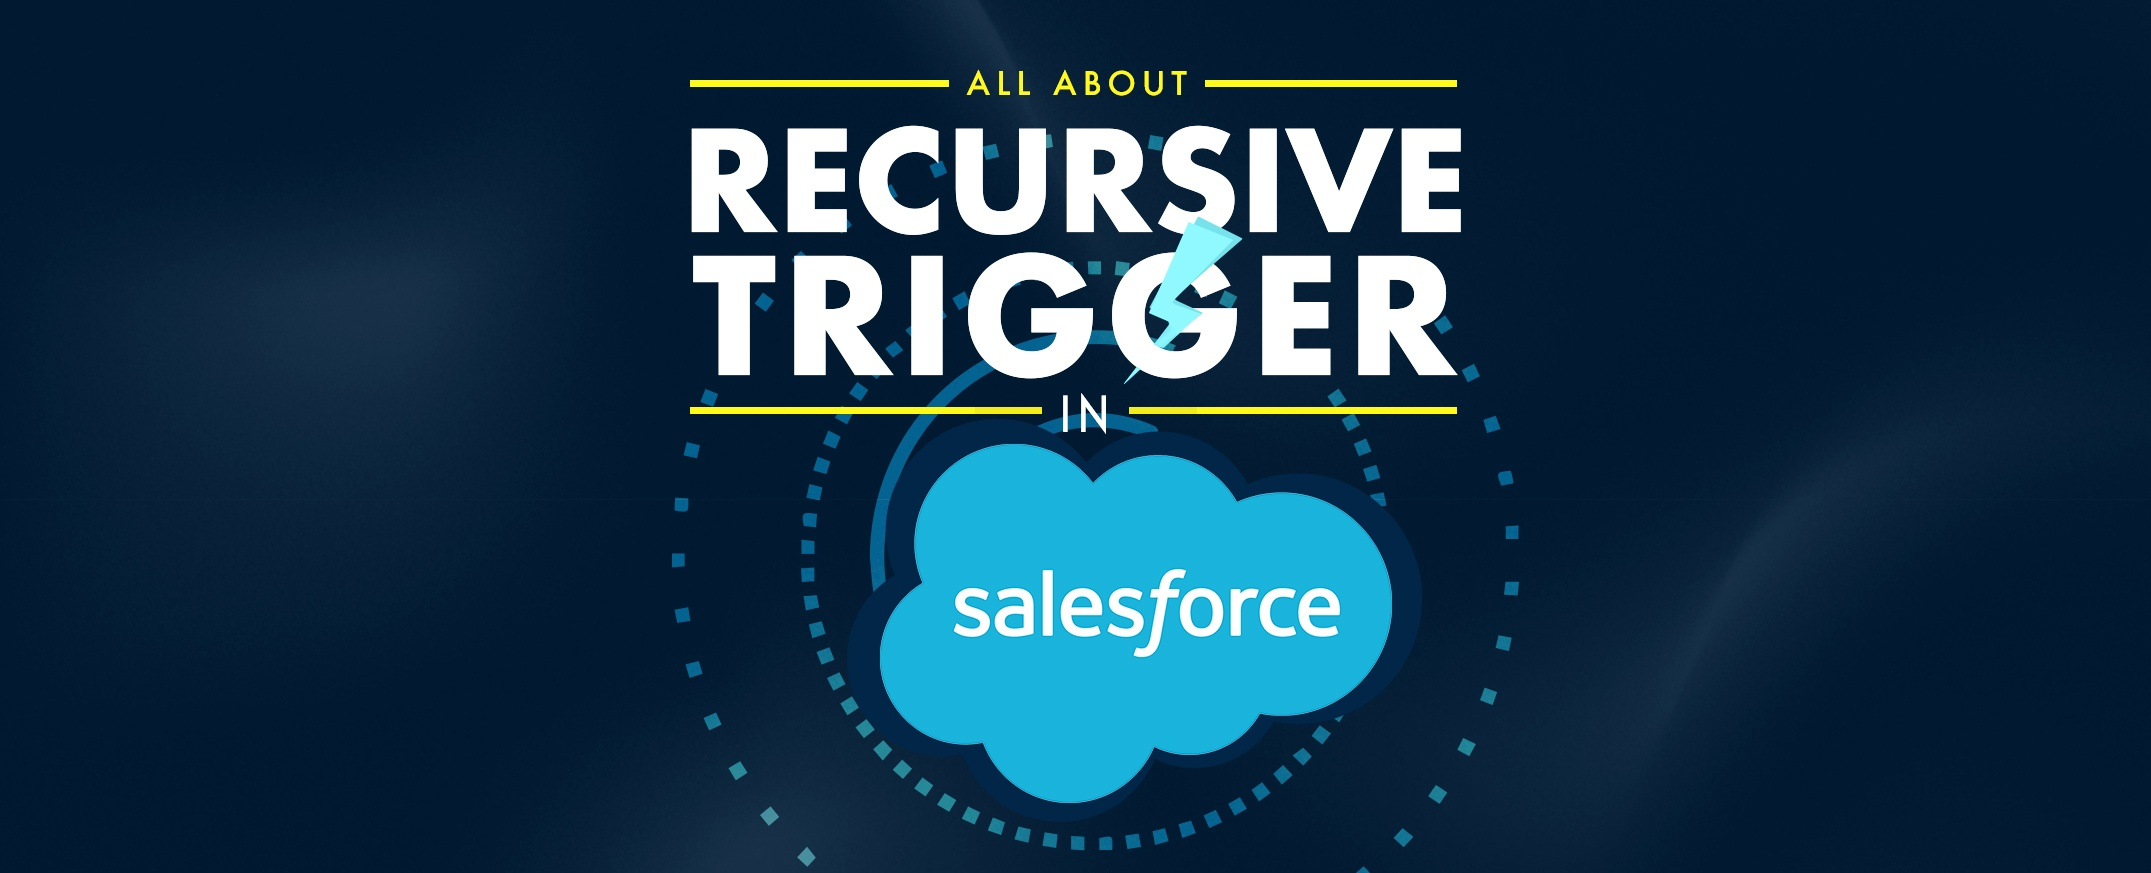 All-About-Recursive-Trigger-in-Salesforce